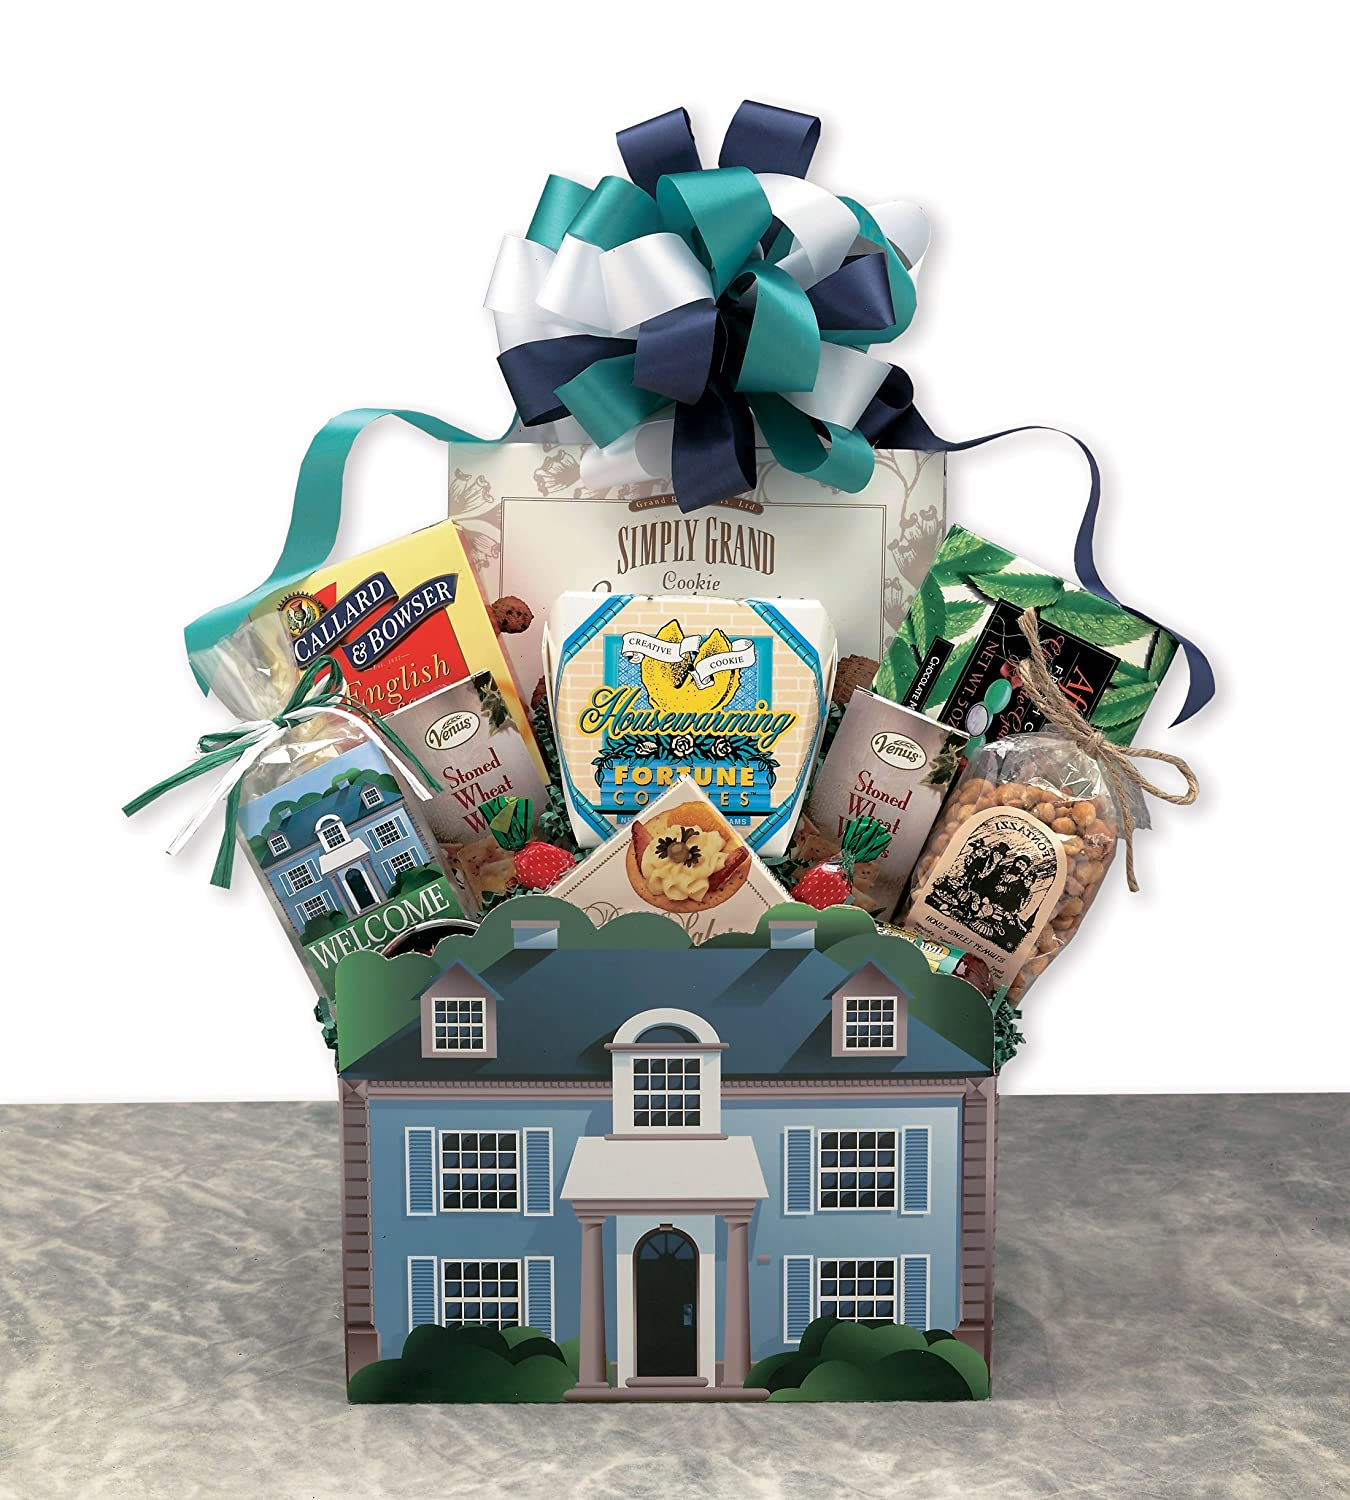 gift box house warming party favors home sweet home ornament real estate gift Mini House Favor Box Set of 12 home gifts